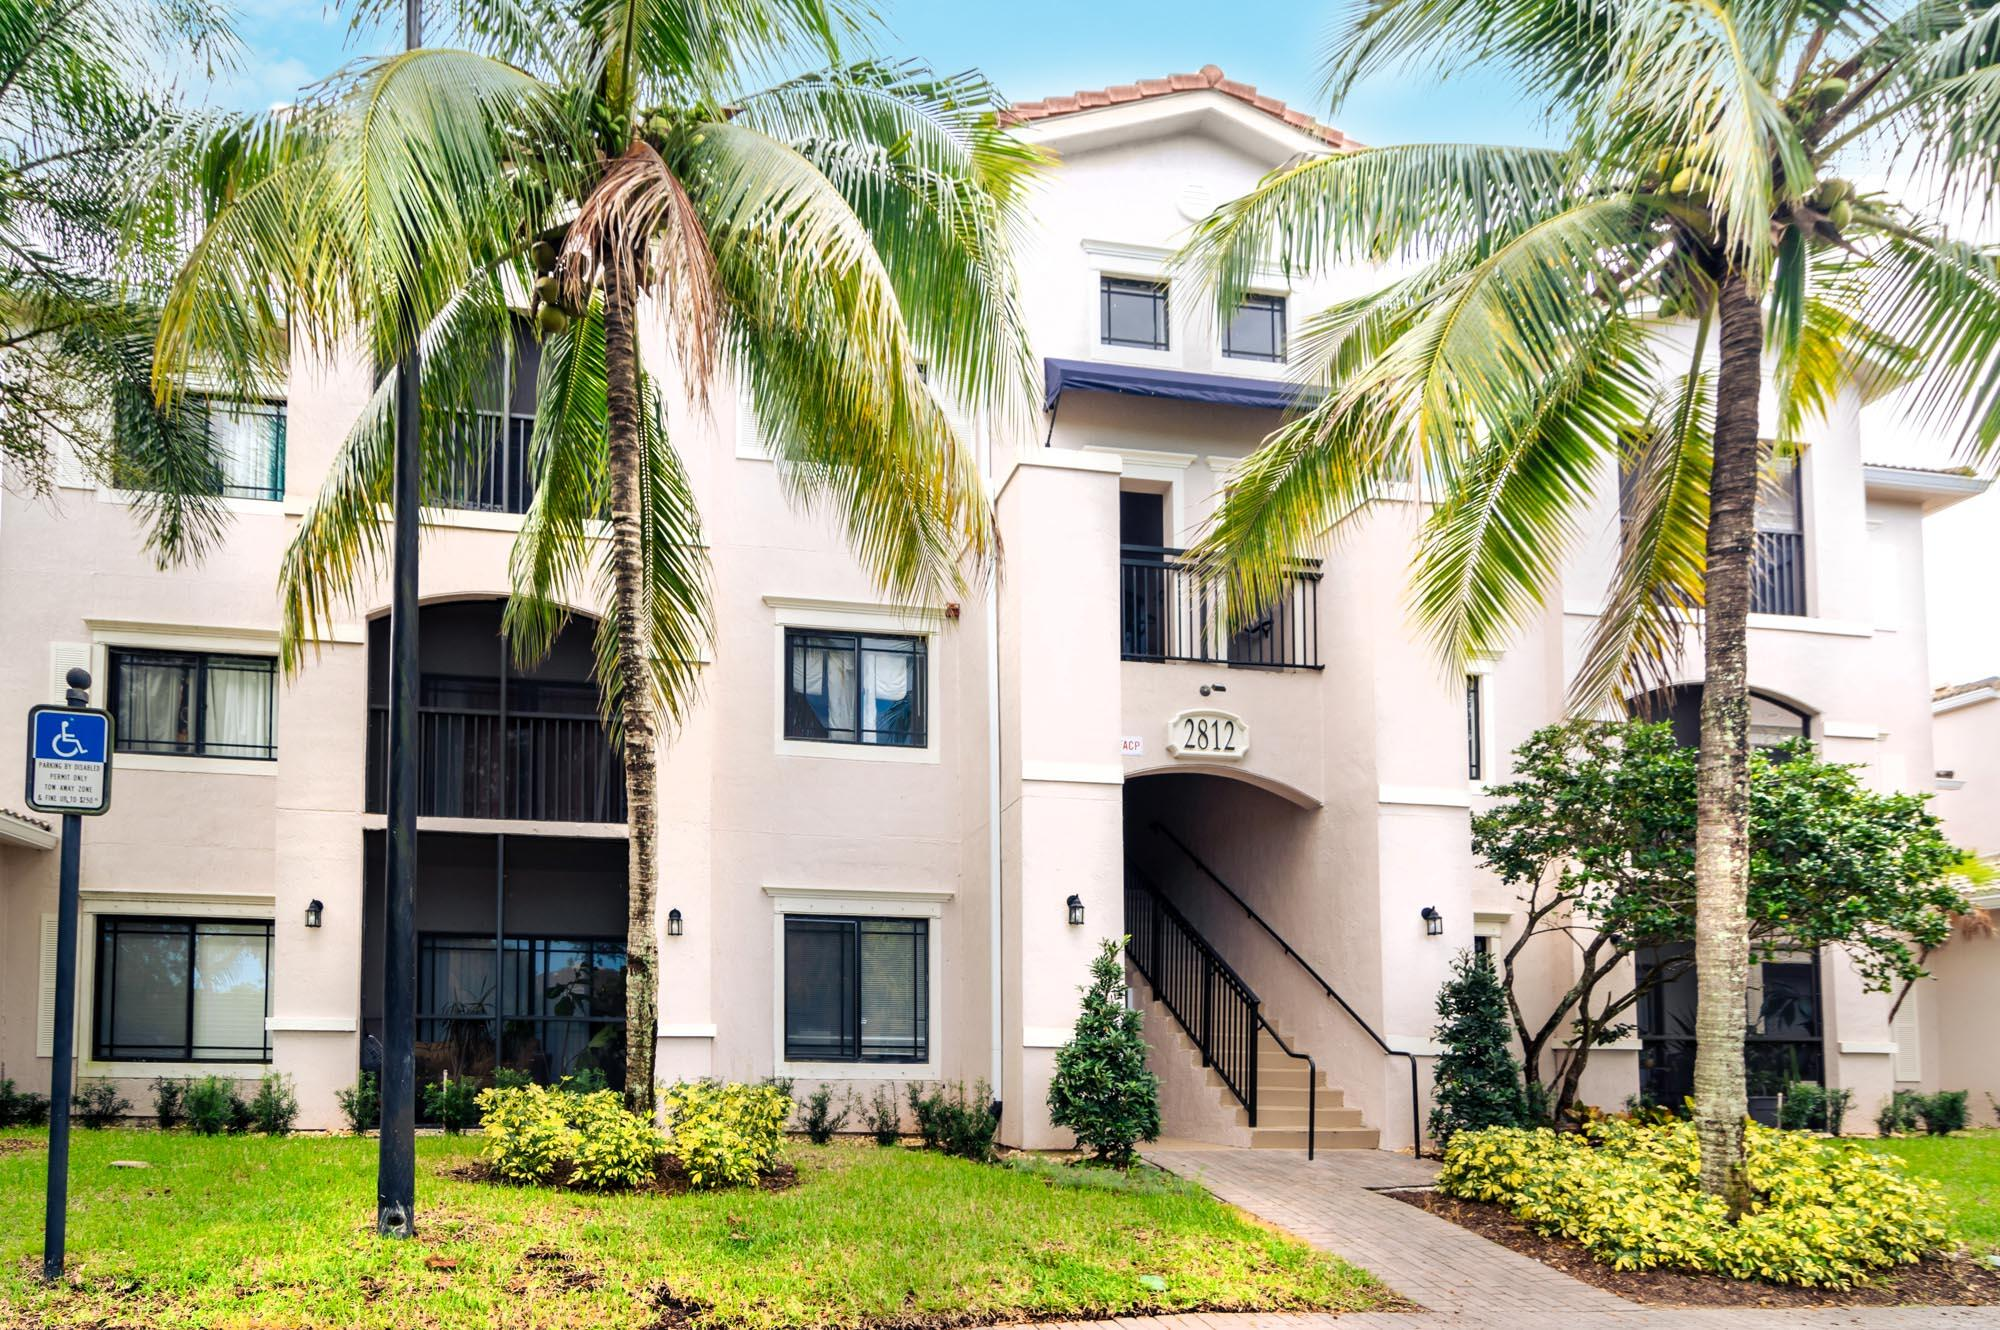 Available end of 2021 into 2022 season. Completely renovated, fully furnished, turnkey 2/2, gated community near Downtown at the Gardens, mall. Pool, Resort Club House.